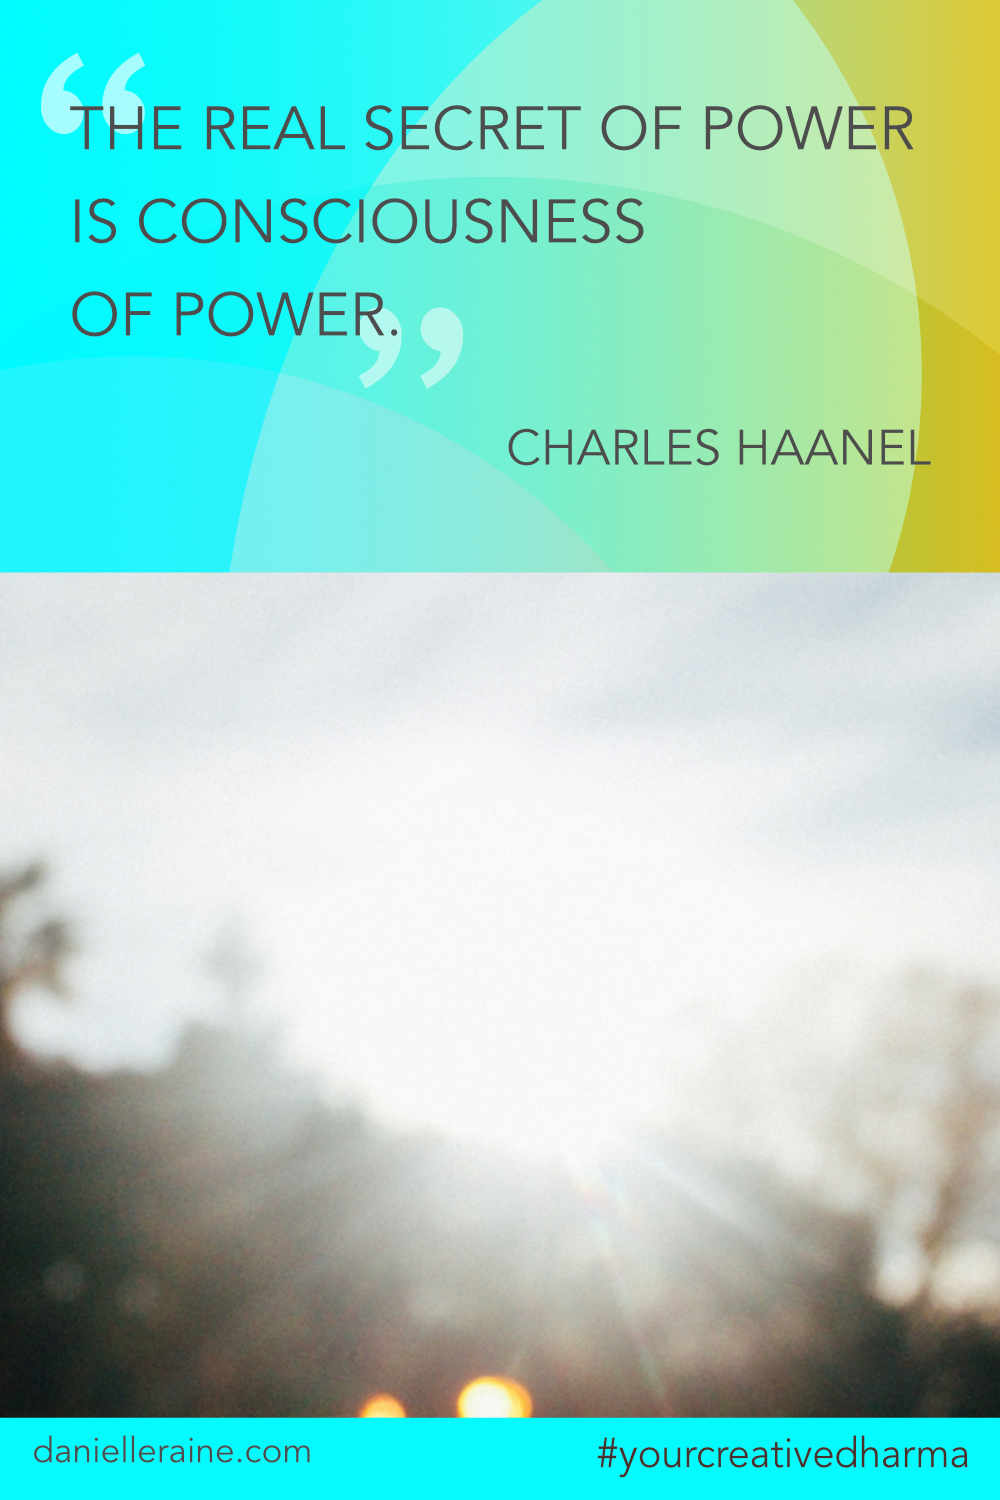 Your Creative Dharma quote charles haanel cocreative power